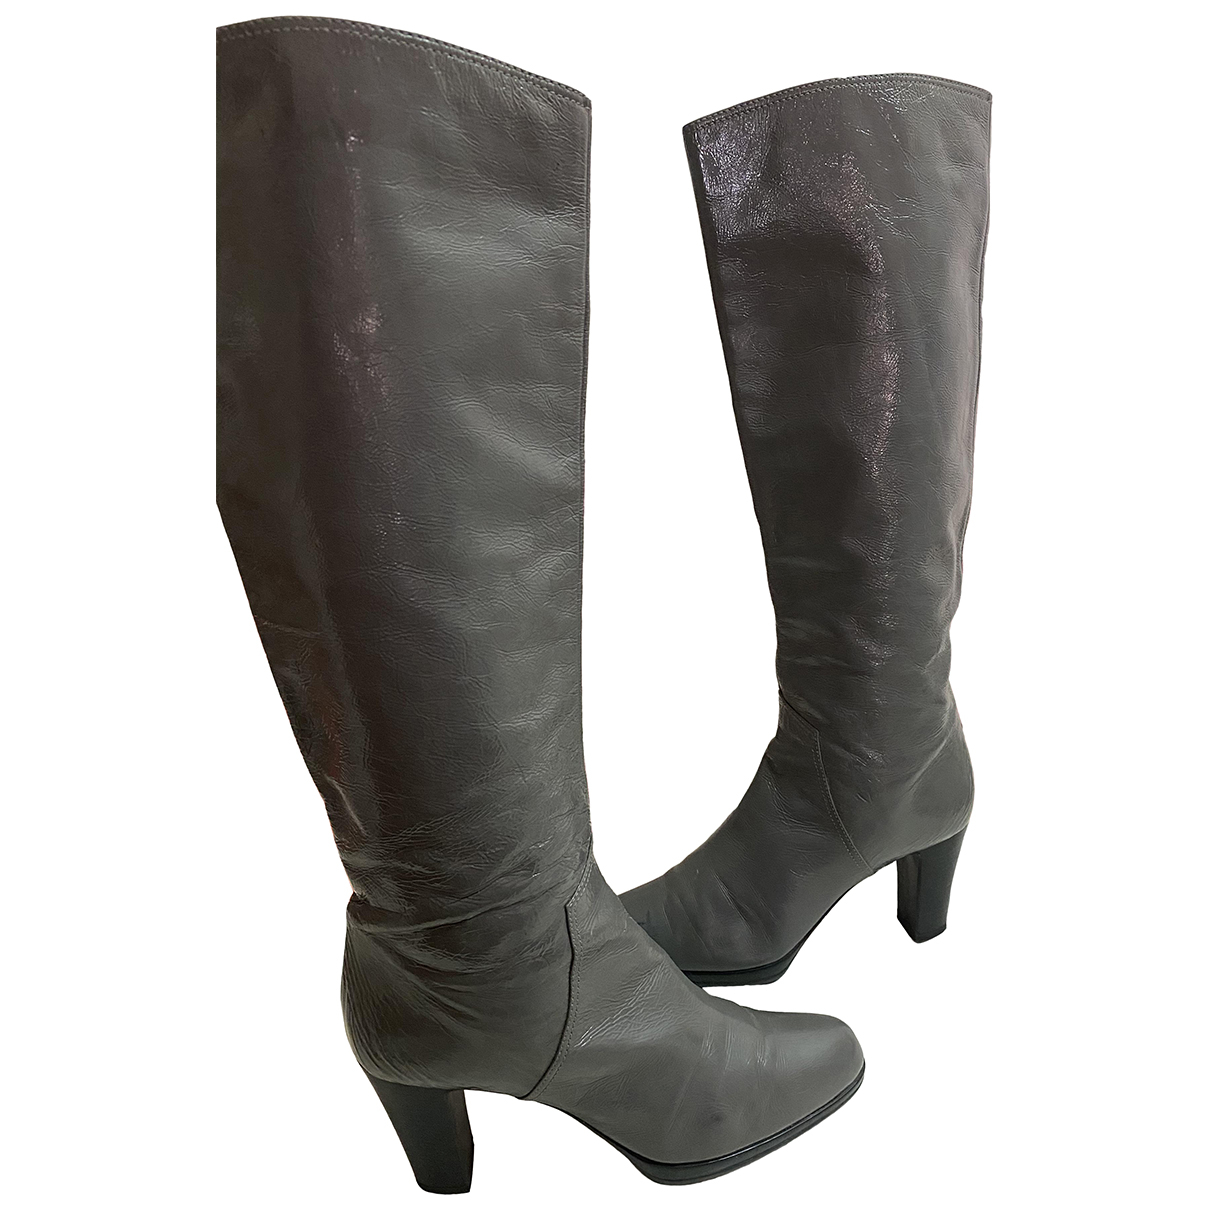 Sergio Rossi N Grey Patent leather Boots for Women 38.5 EU